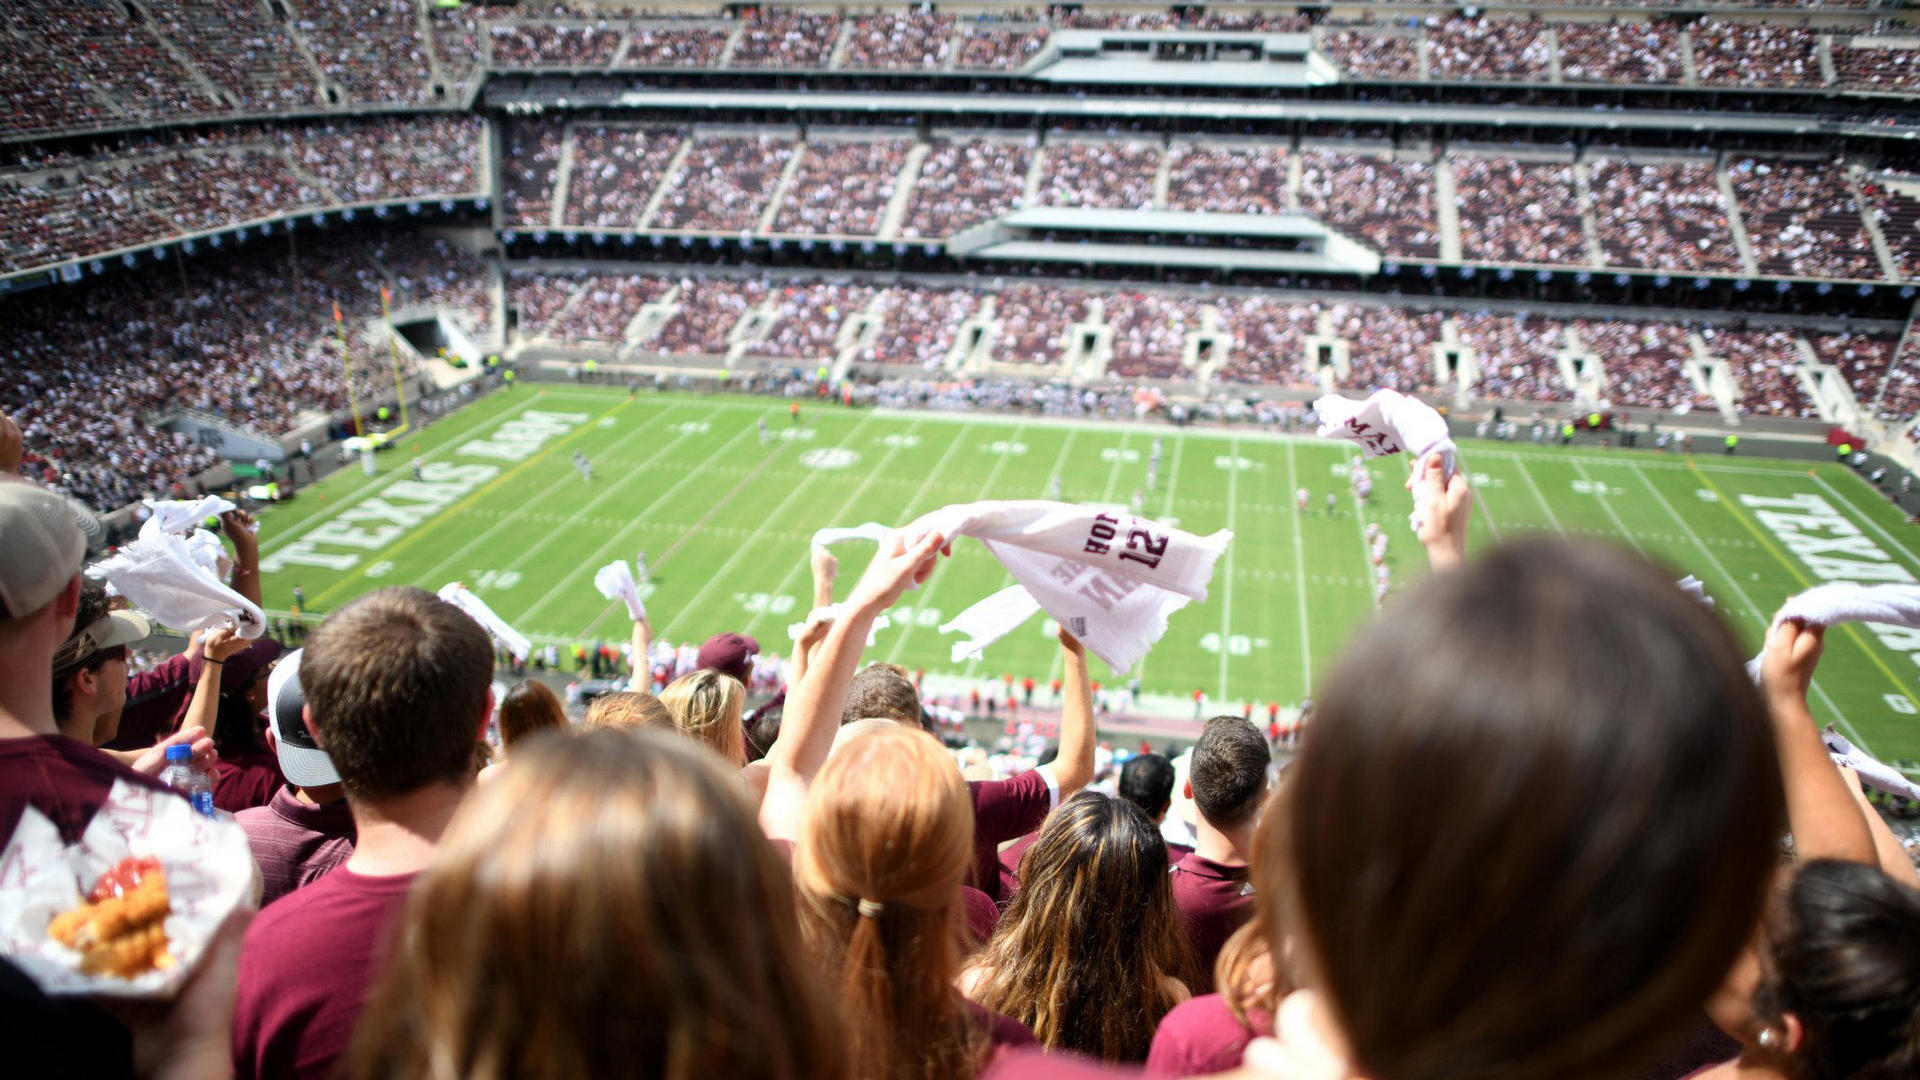 gameday at kyle field